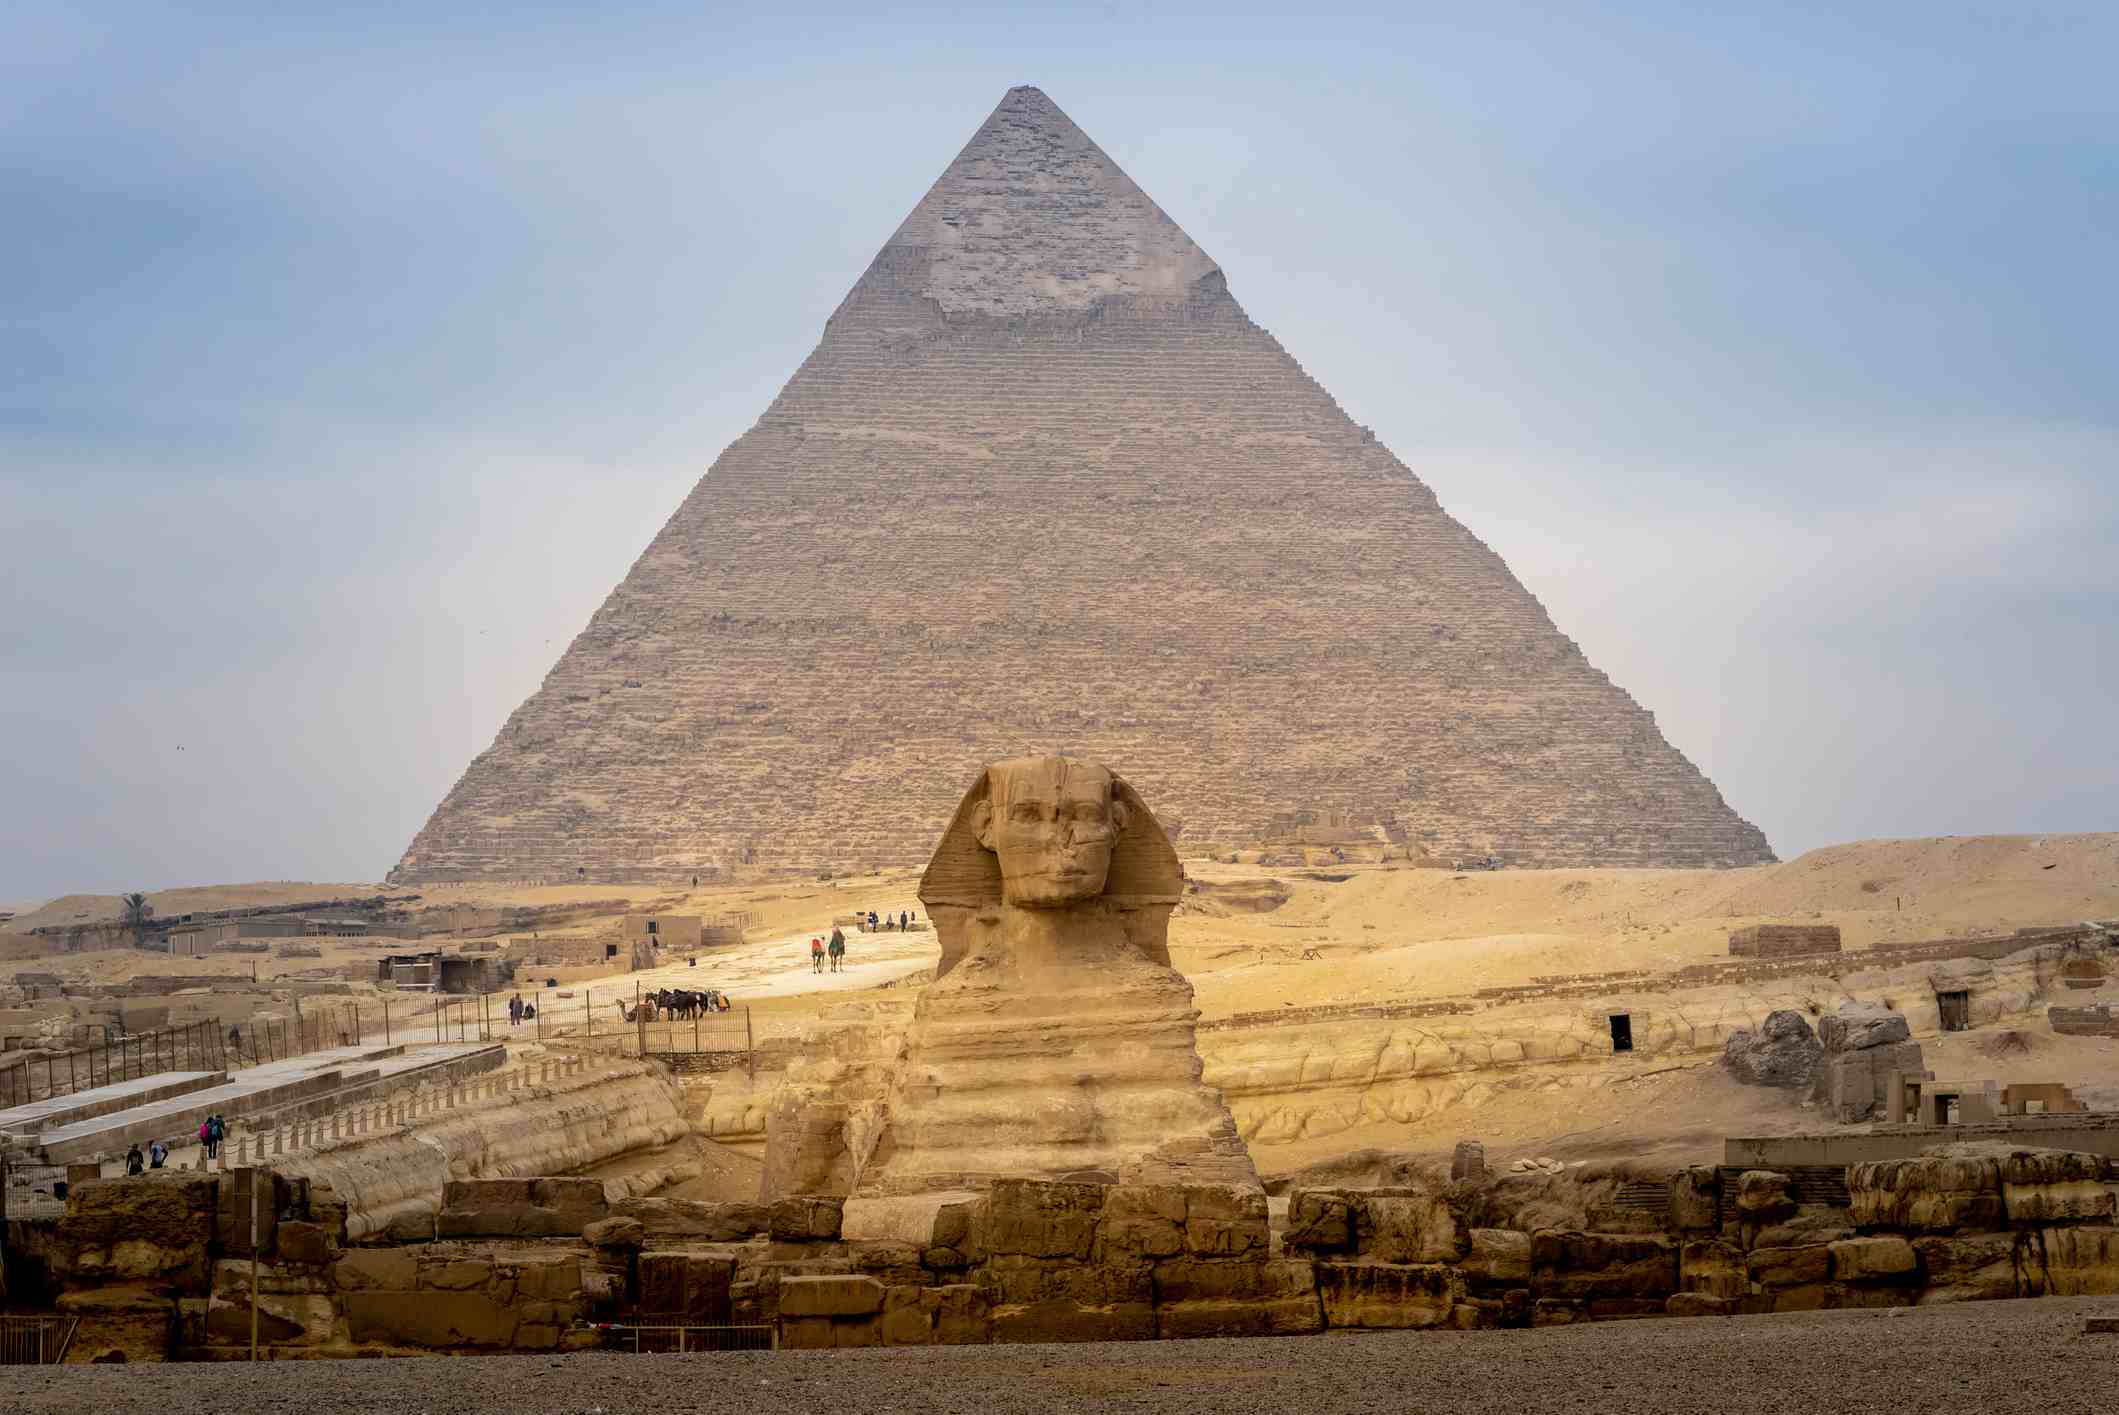 Great Sphinx in front of Pyramid of Giza in Egypt